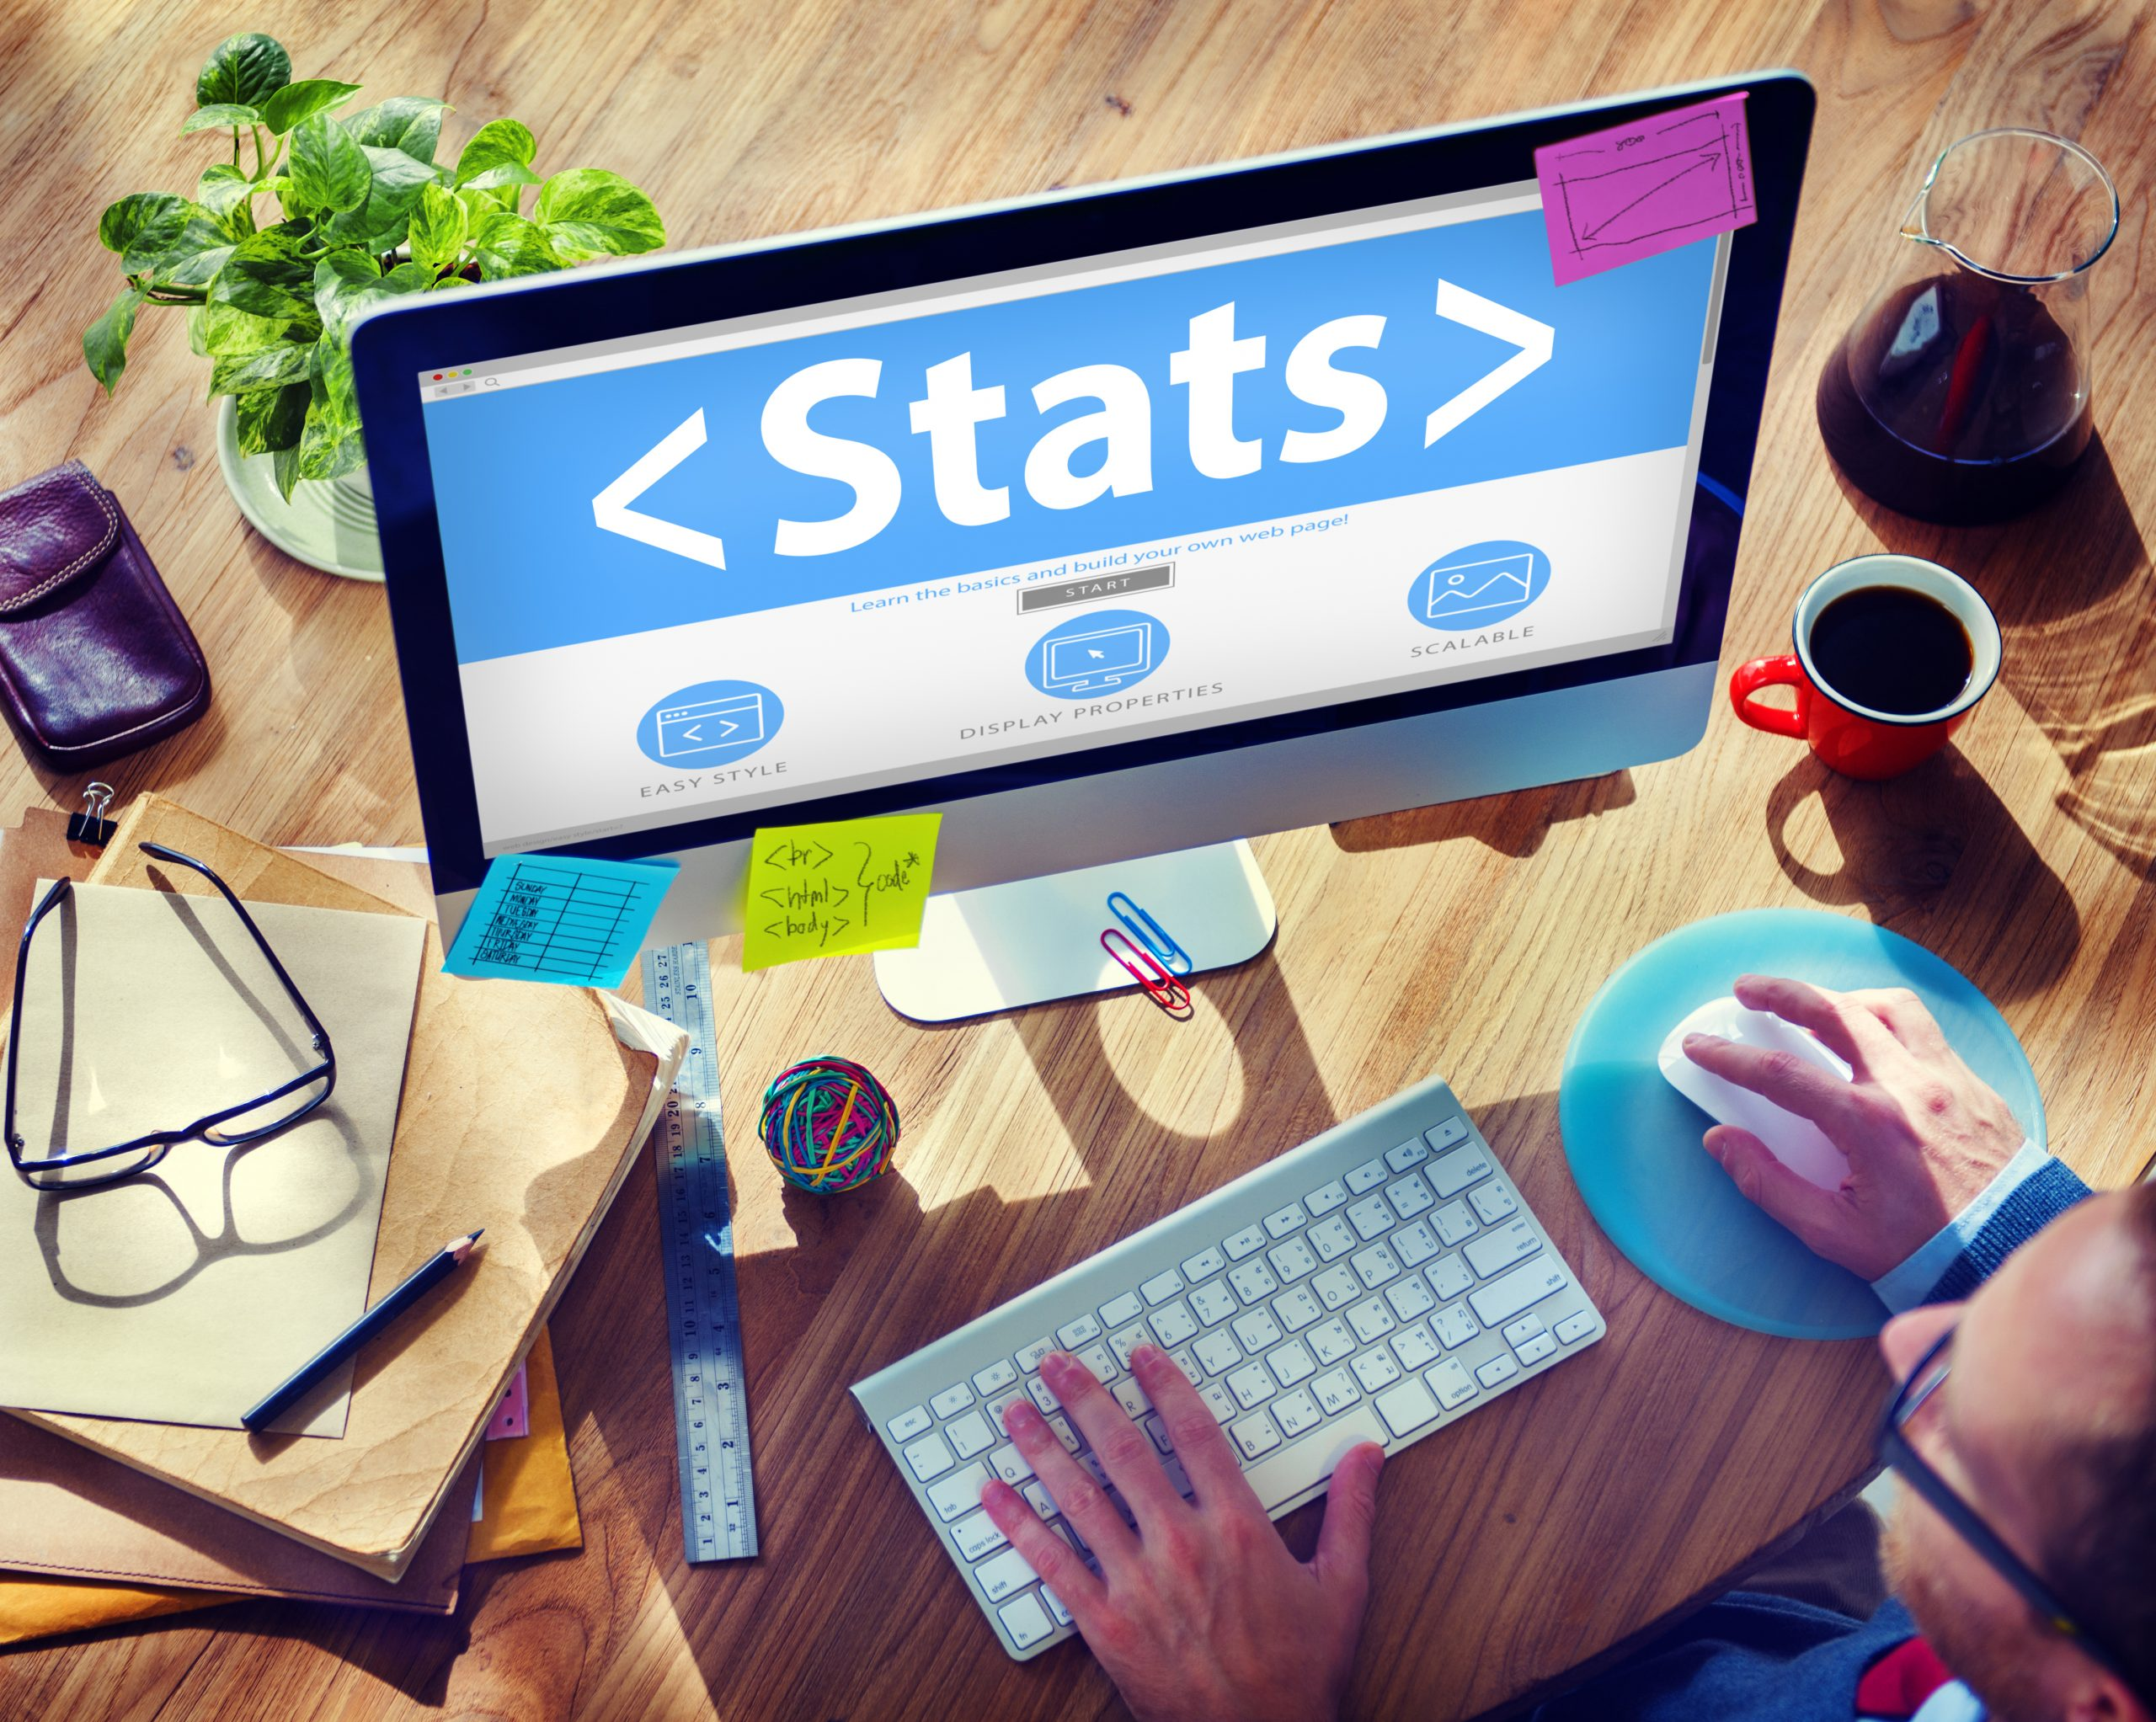 Three Uses of Census Data in Marketing